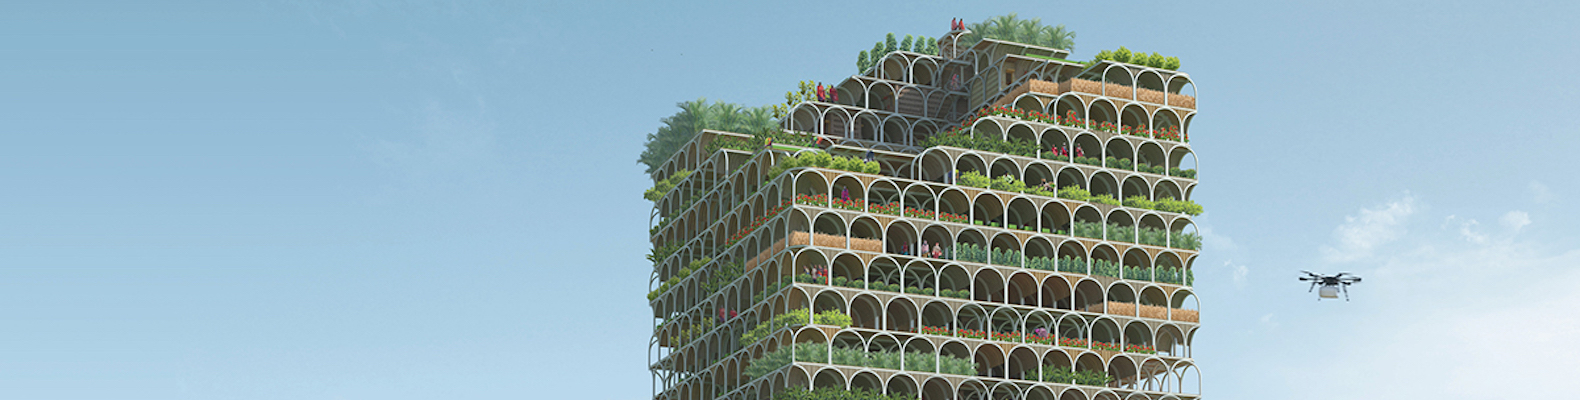 Incredible farming skyscraper could fight poverty and feed the world